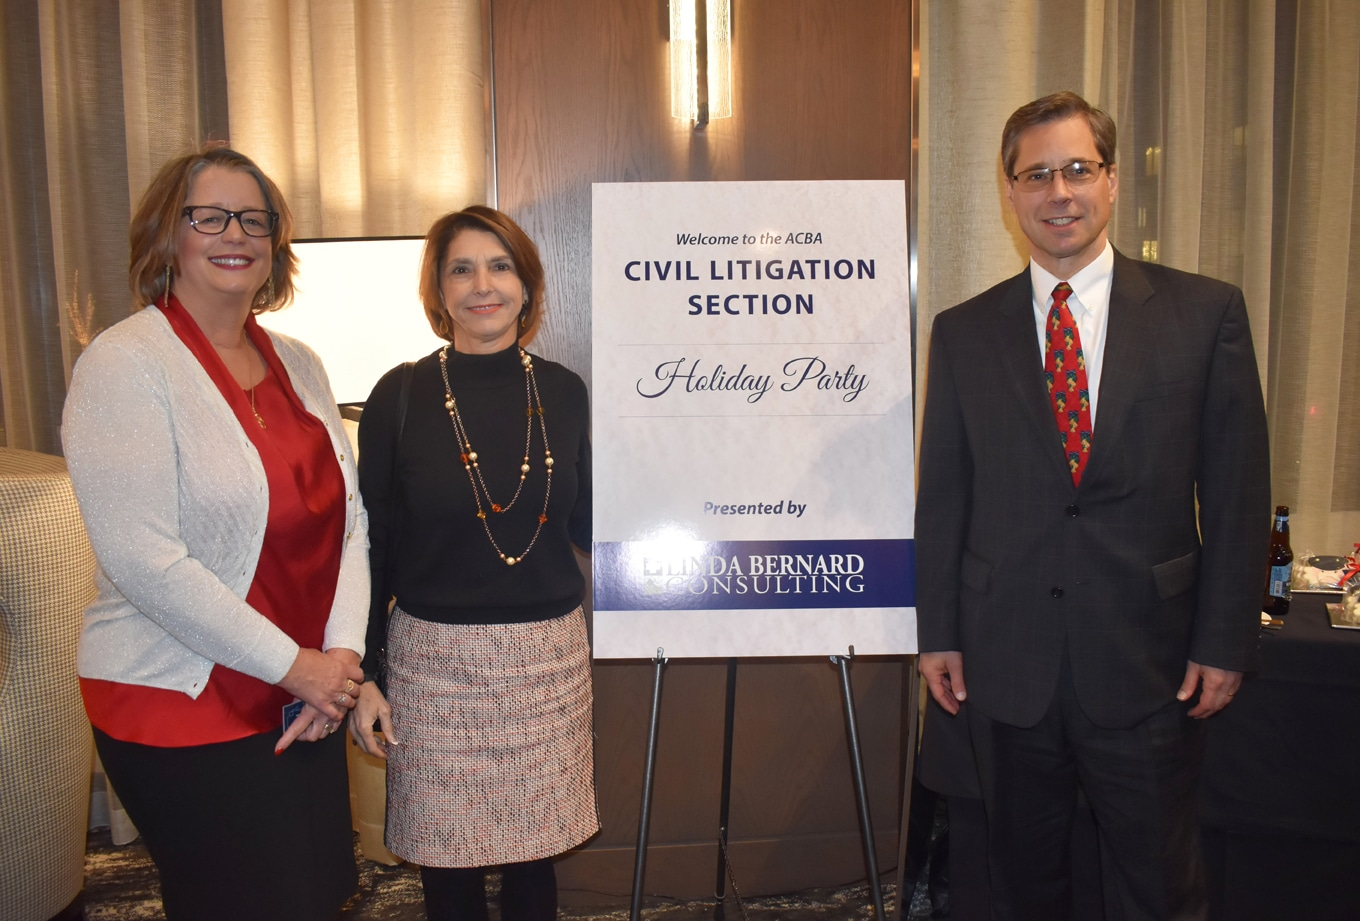 Linda Bernard, Judge Lisa Pupo Lenihan, Magistrate Judge Western District of PA, and John K. Gisleson, Partner at Morgan Lewis at the Allegheny County Bar Association Civil Litigation Holiday Party.